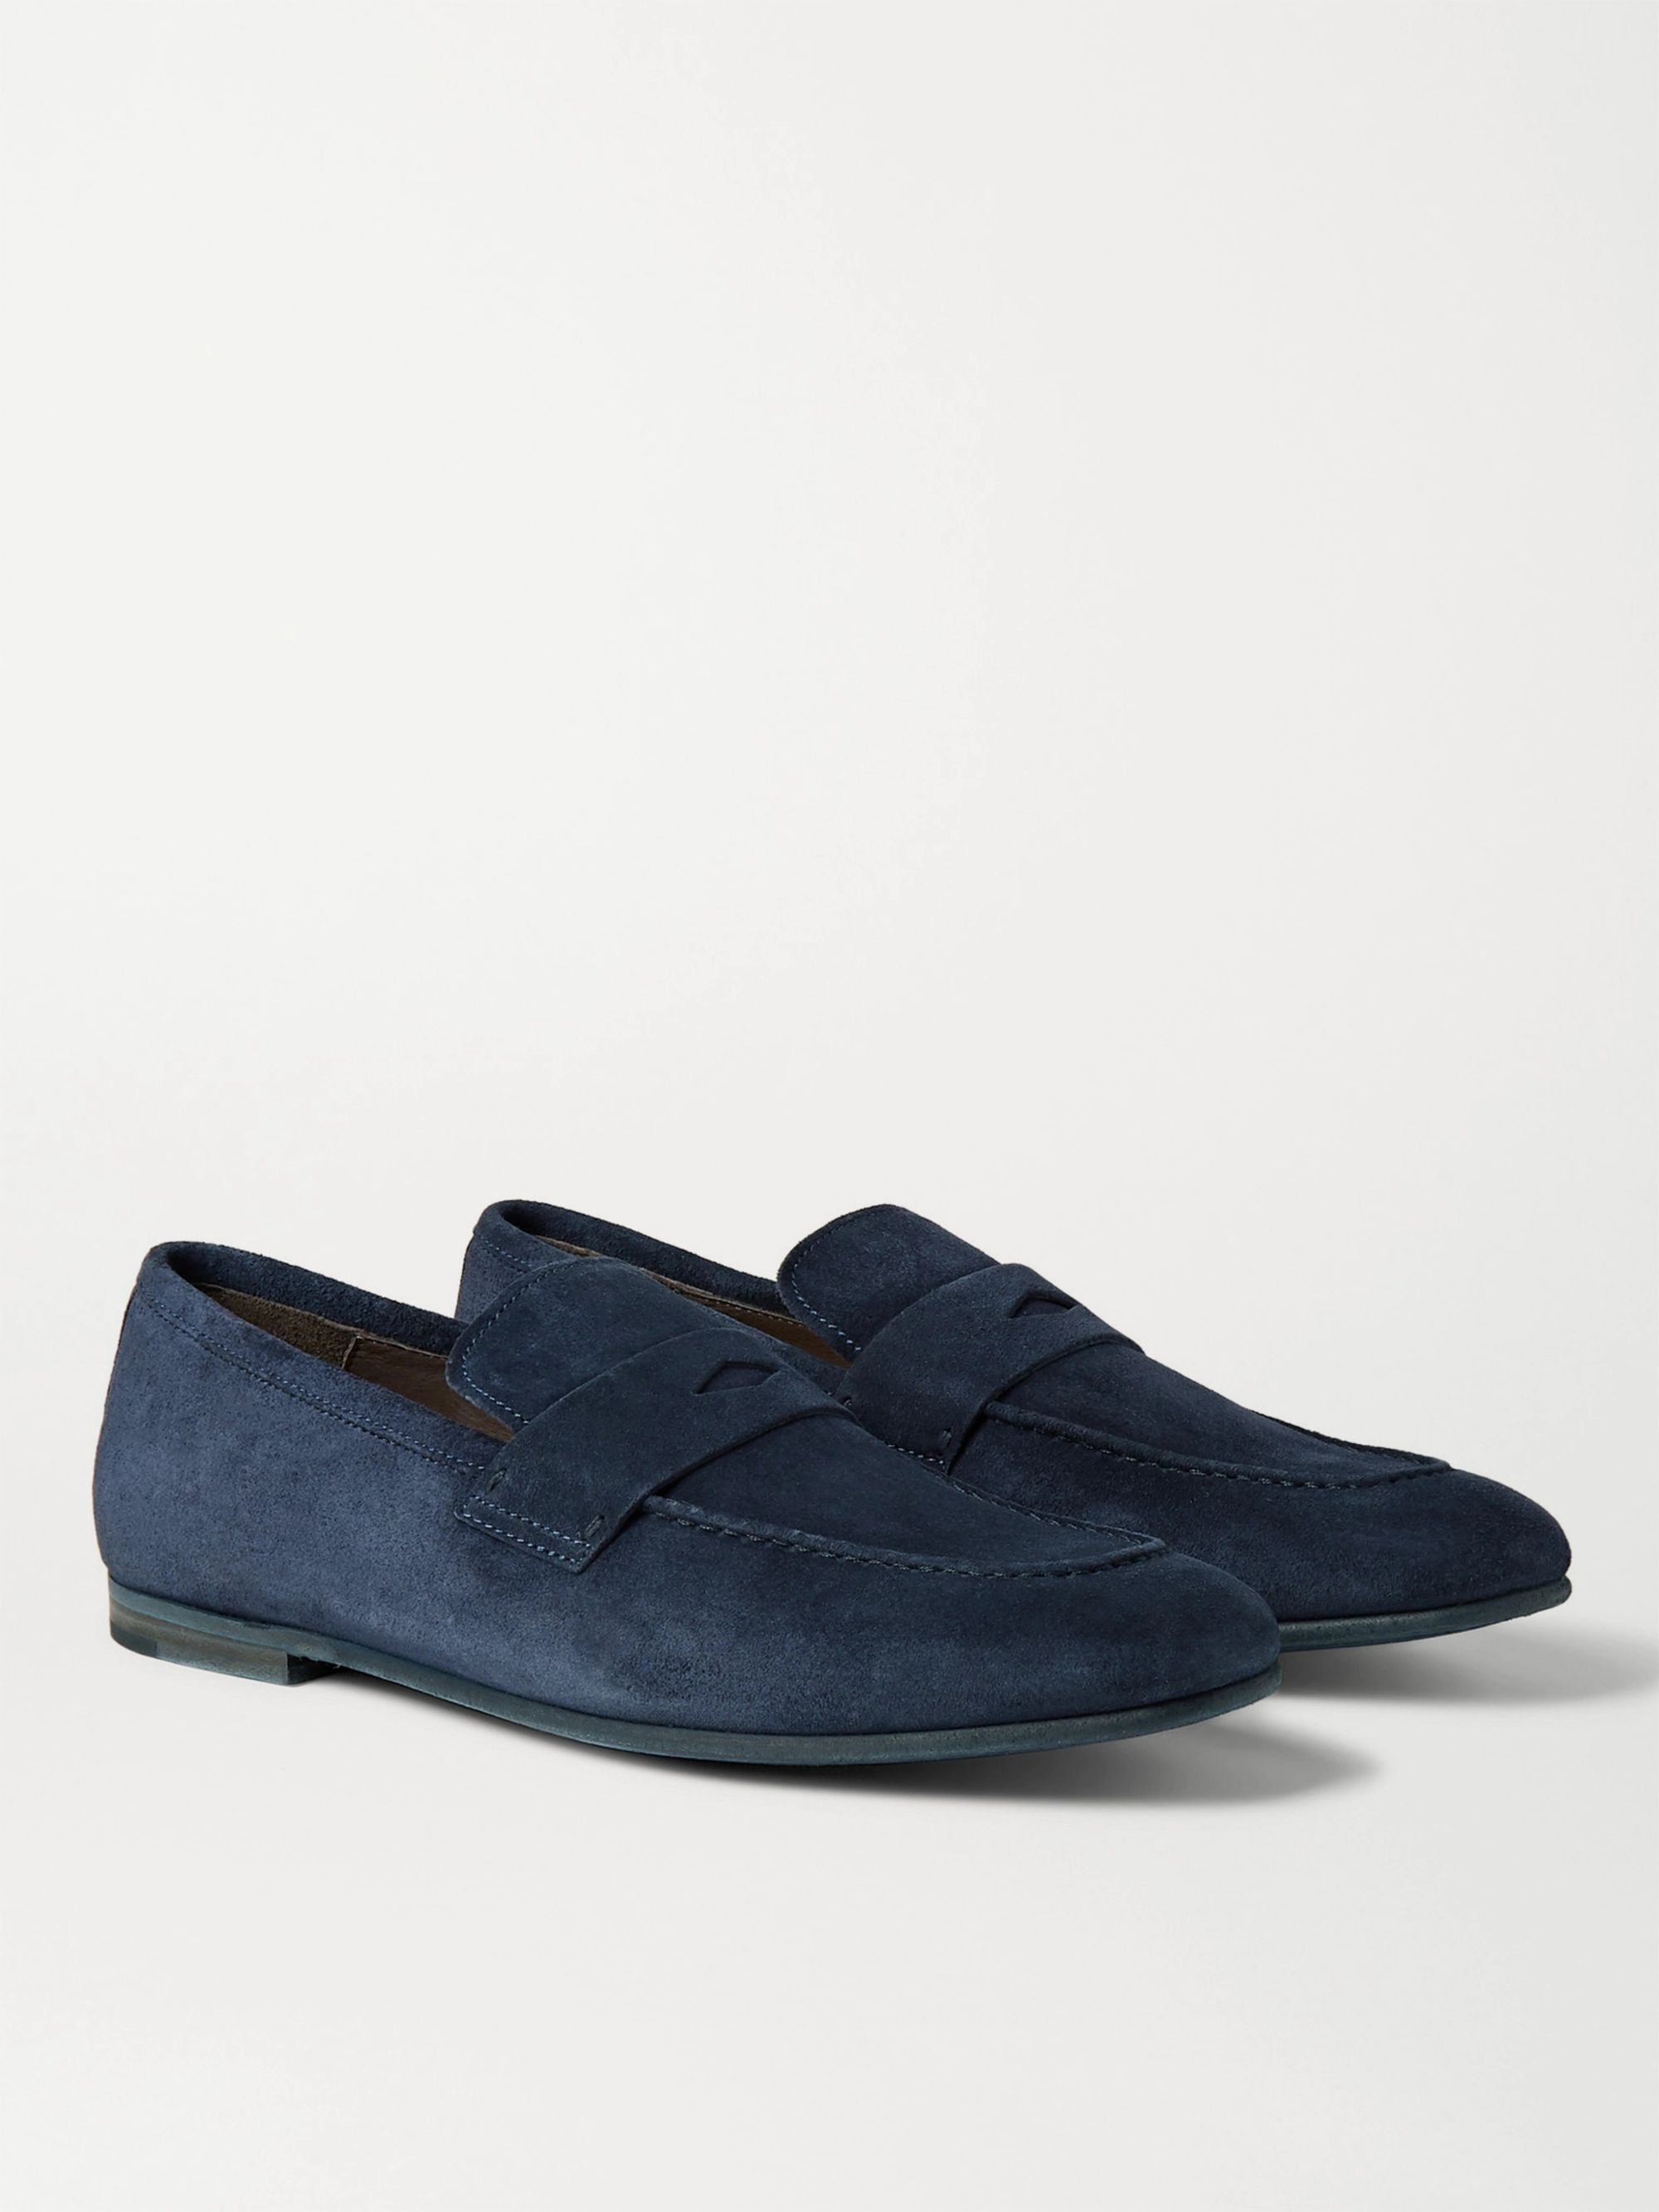 DUNHILL Chiltern Suede Penny Loafers